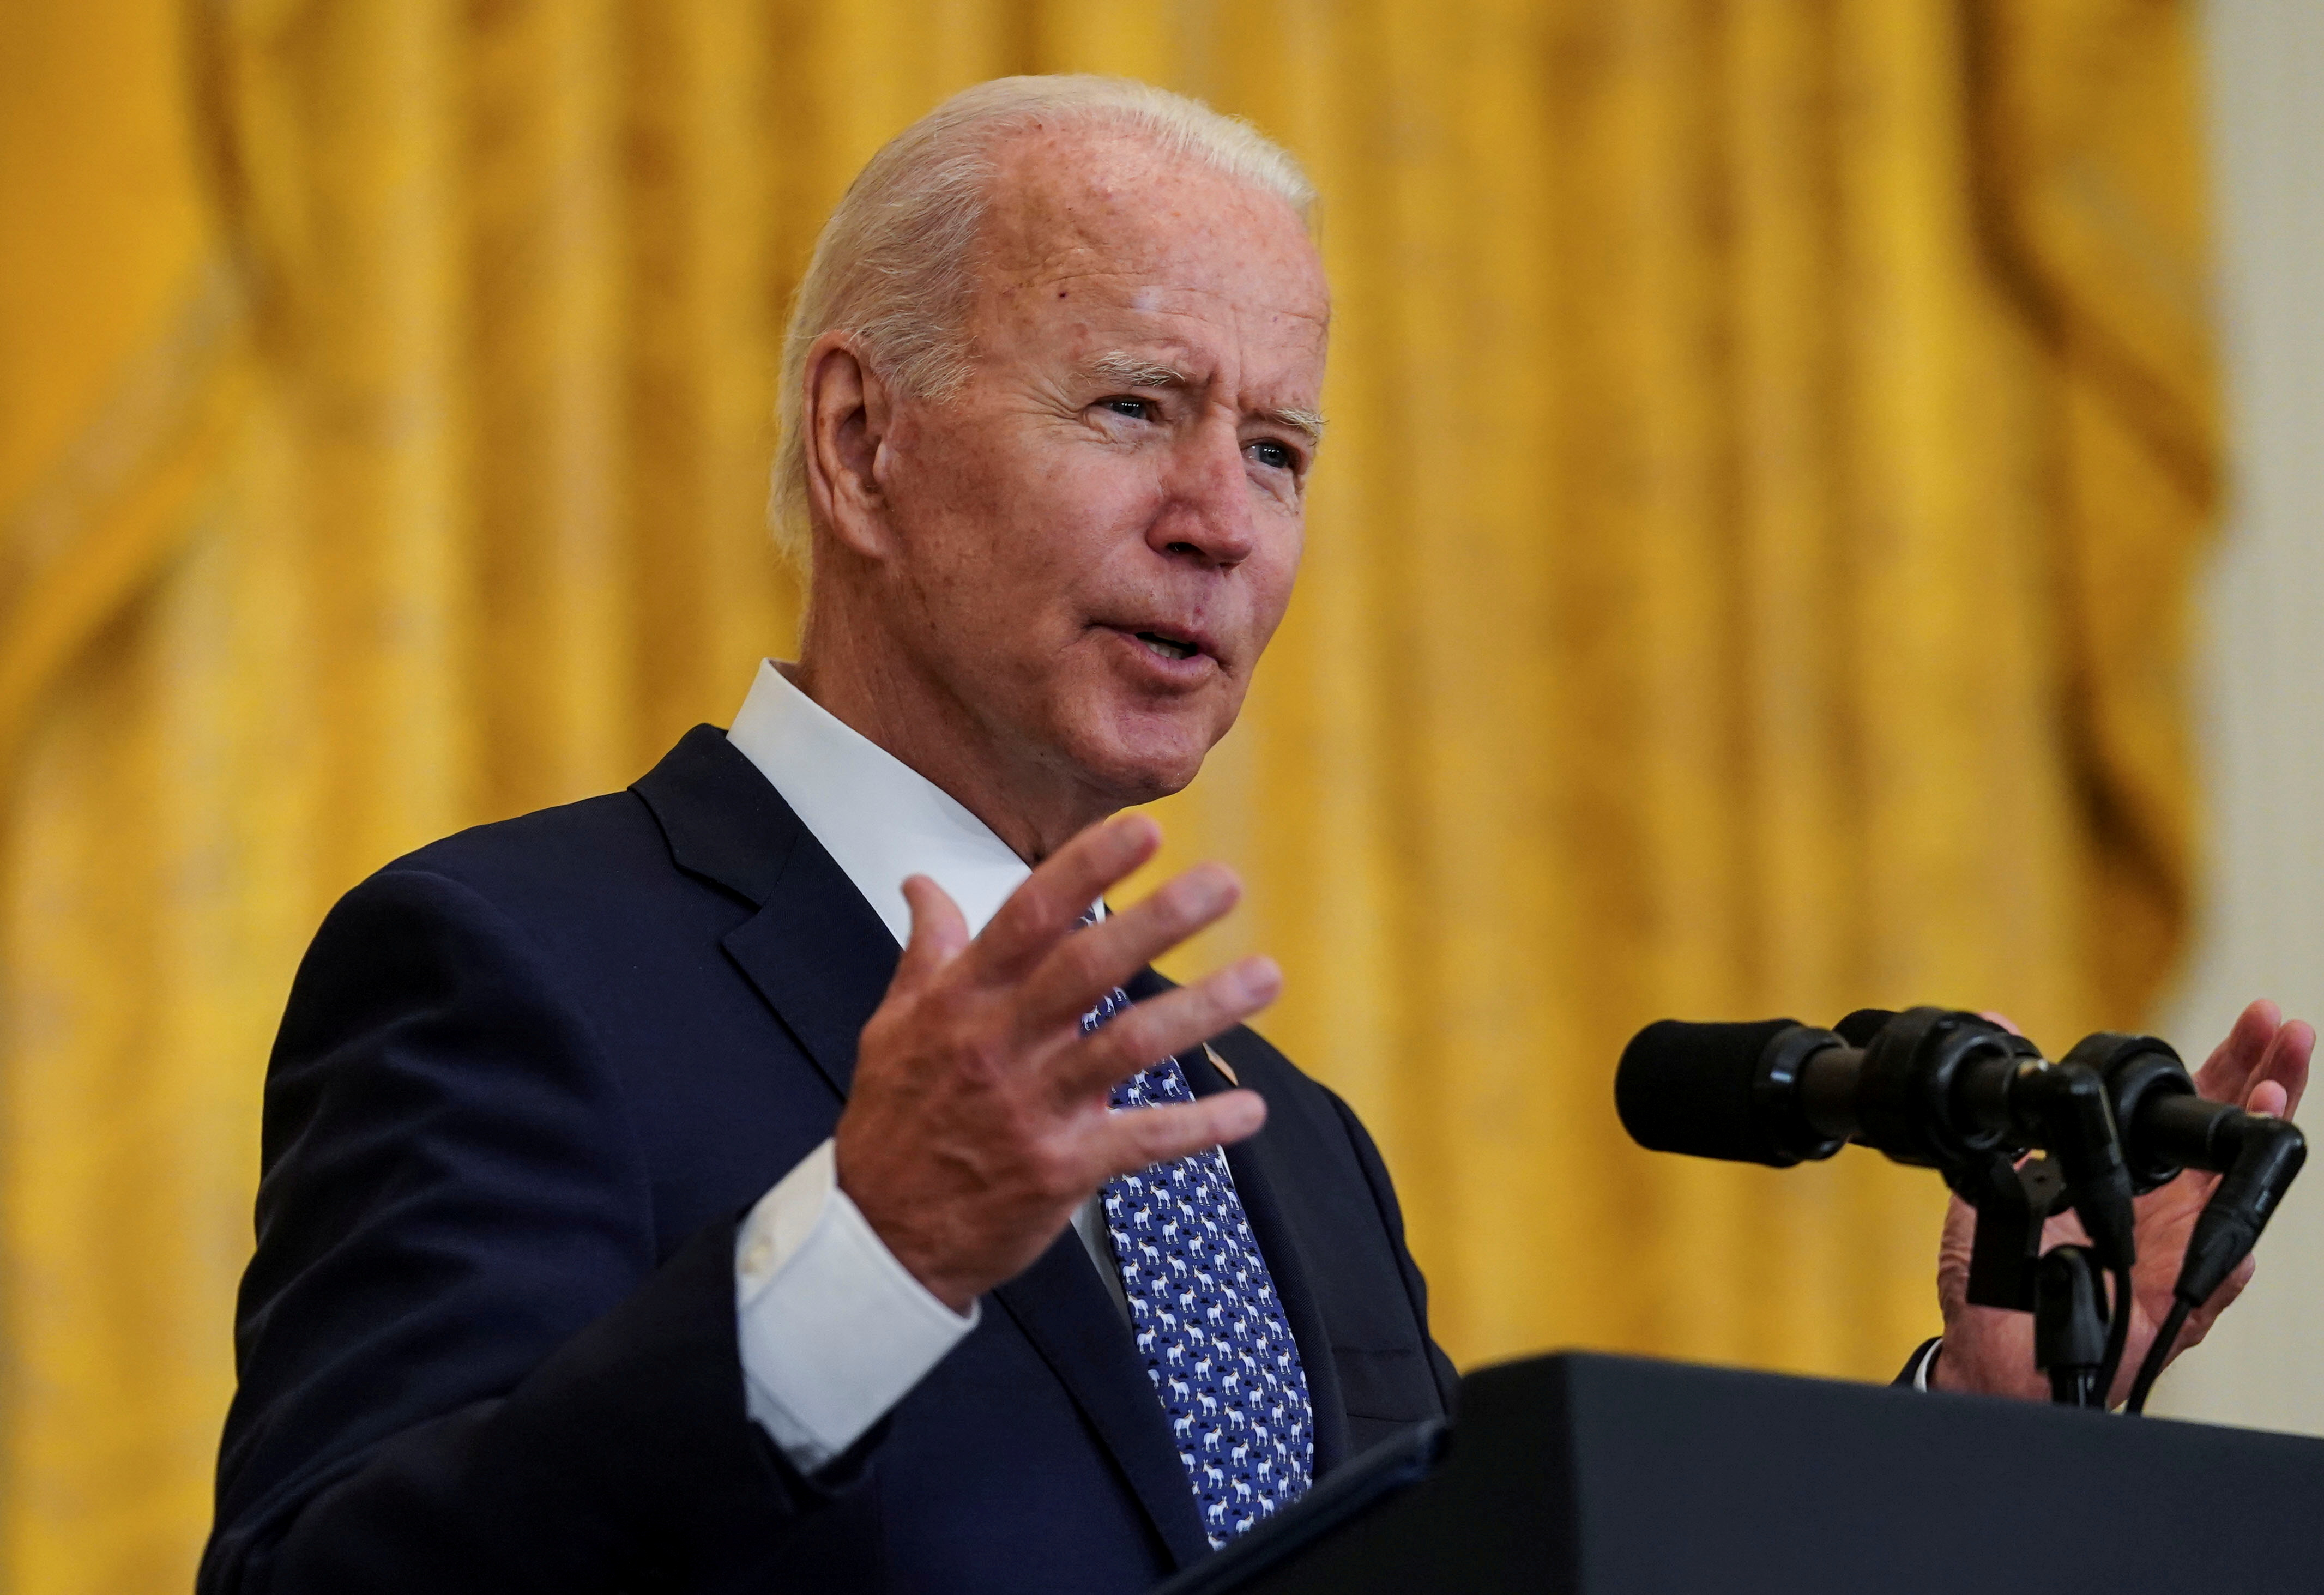 U.S. President Joe Biden delivers remarks in honor of labor unions in the East Room at the White House in Washington, U.S., September 8, 2021. REUTERS/Kevin Lamarque/File Photo